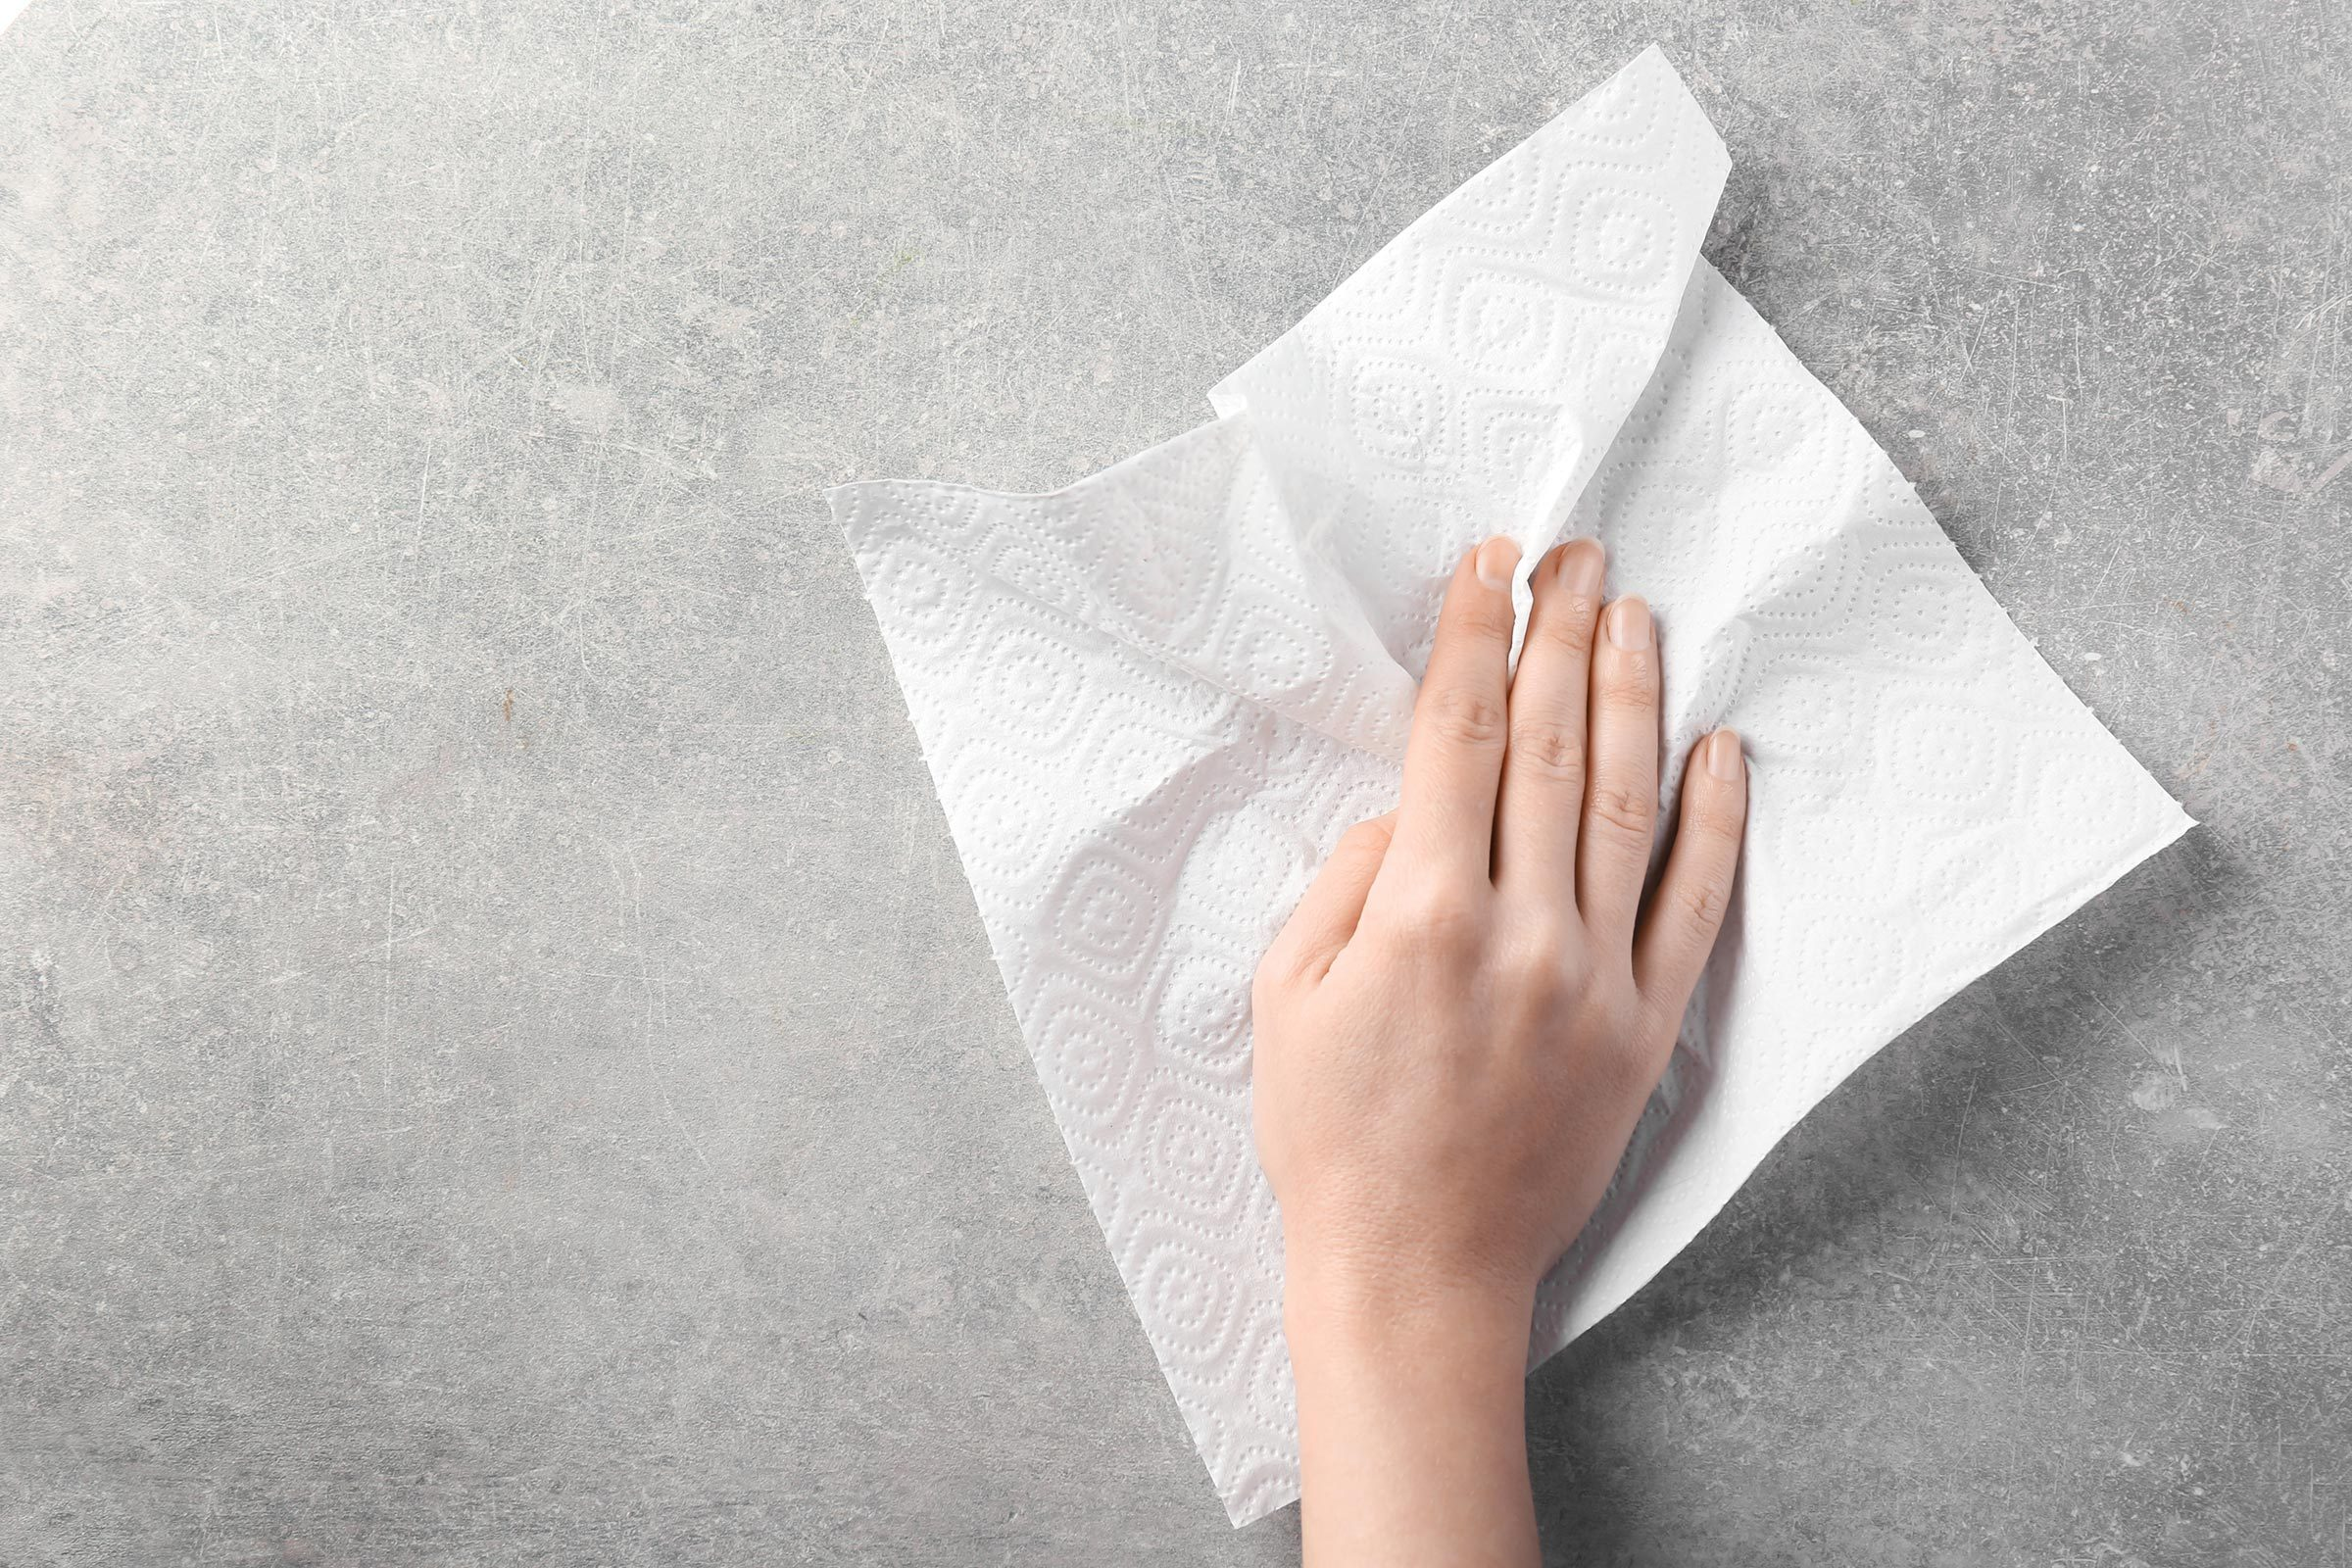 wipe counter hand paper towel